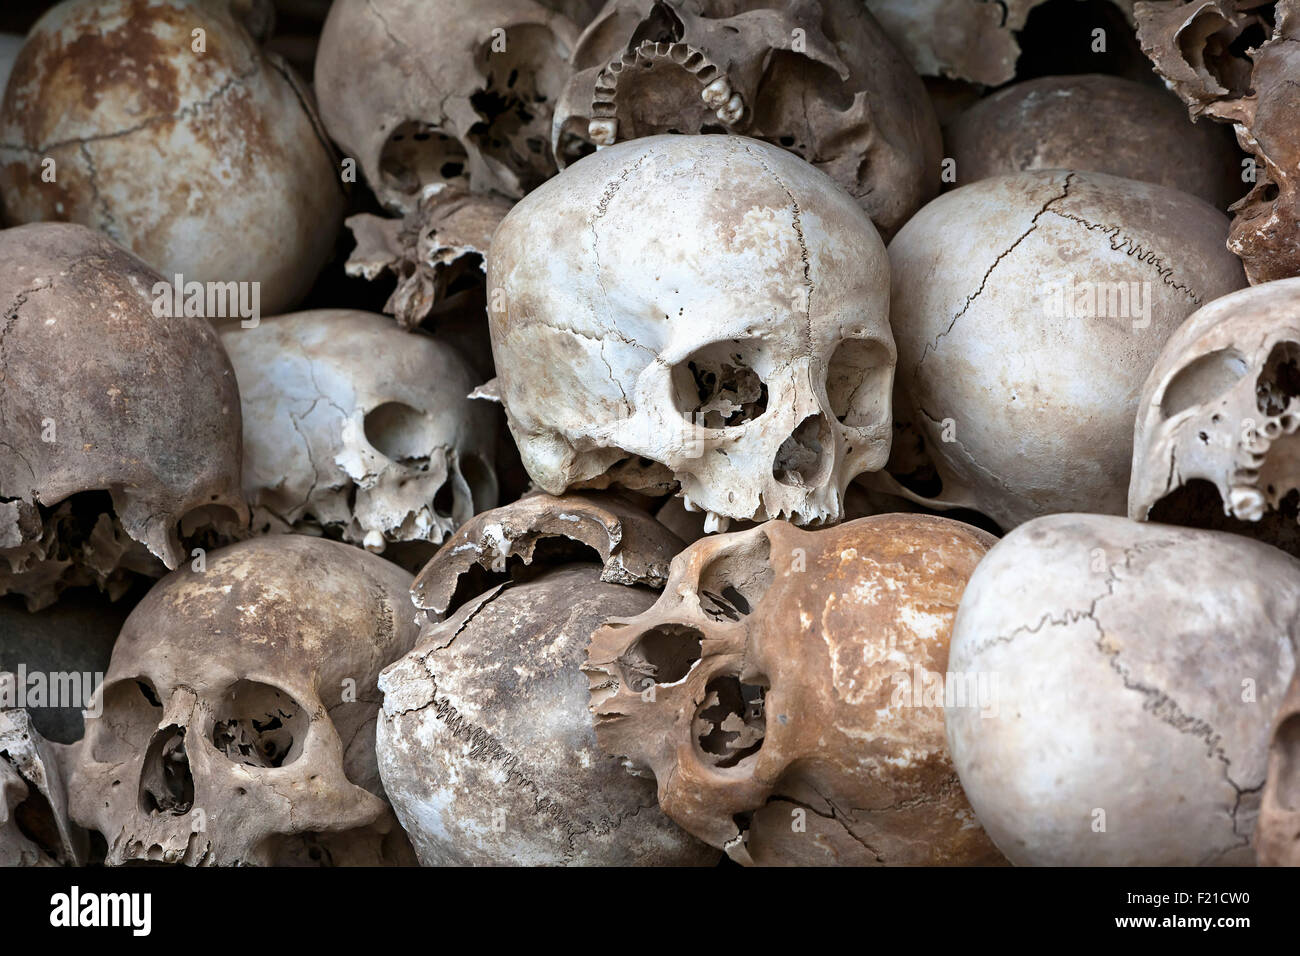 Skulls at the Choeung Ek Memorial stupa for victims of the killing fields of the Khmer Rouge - Stock Image